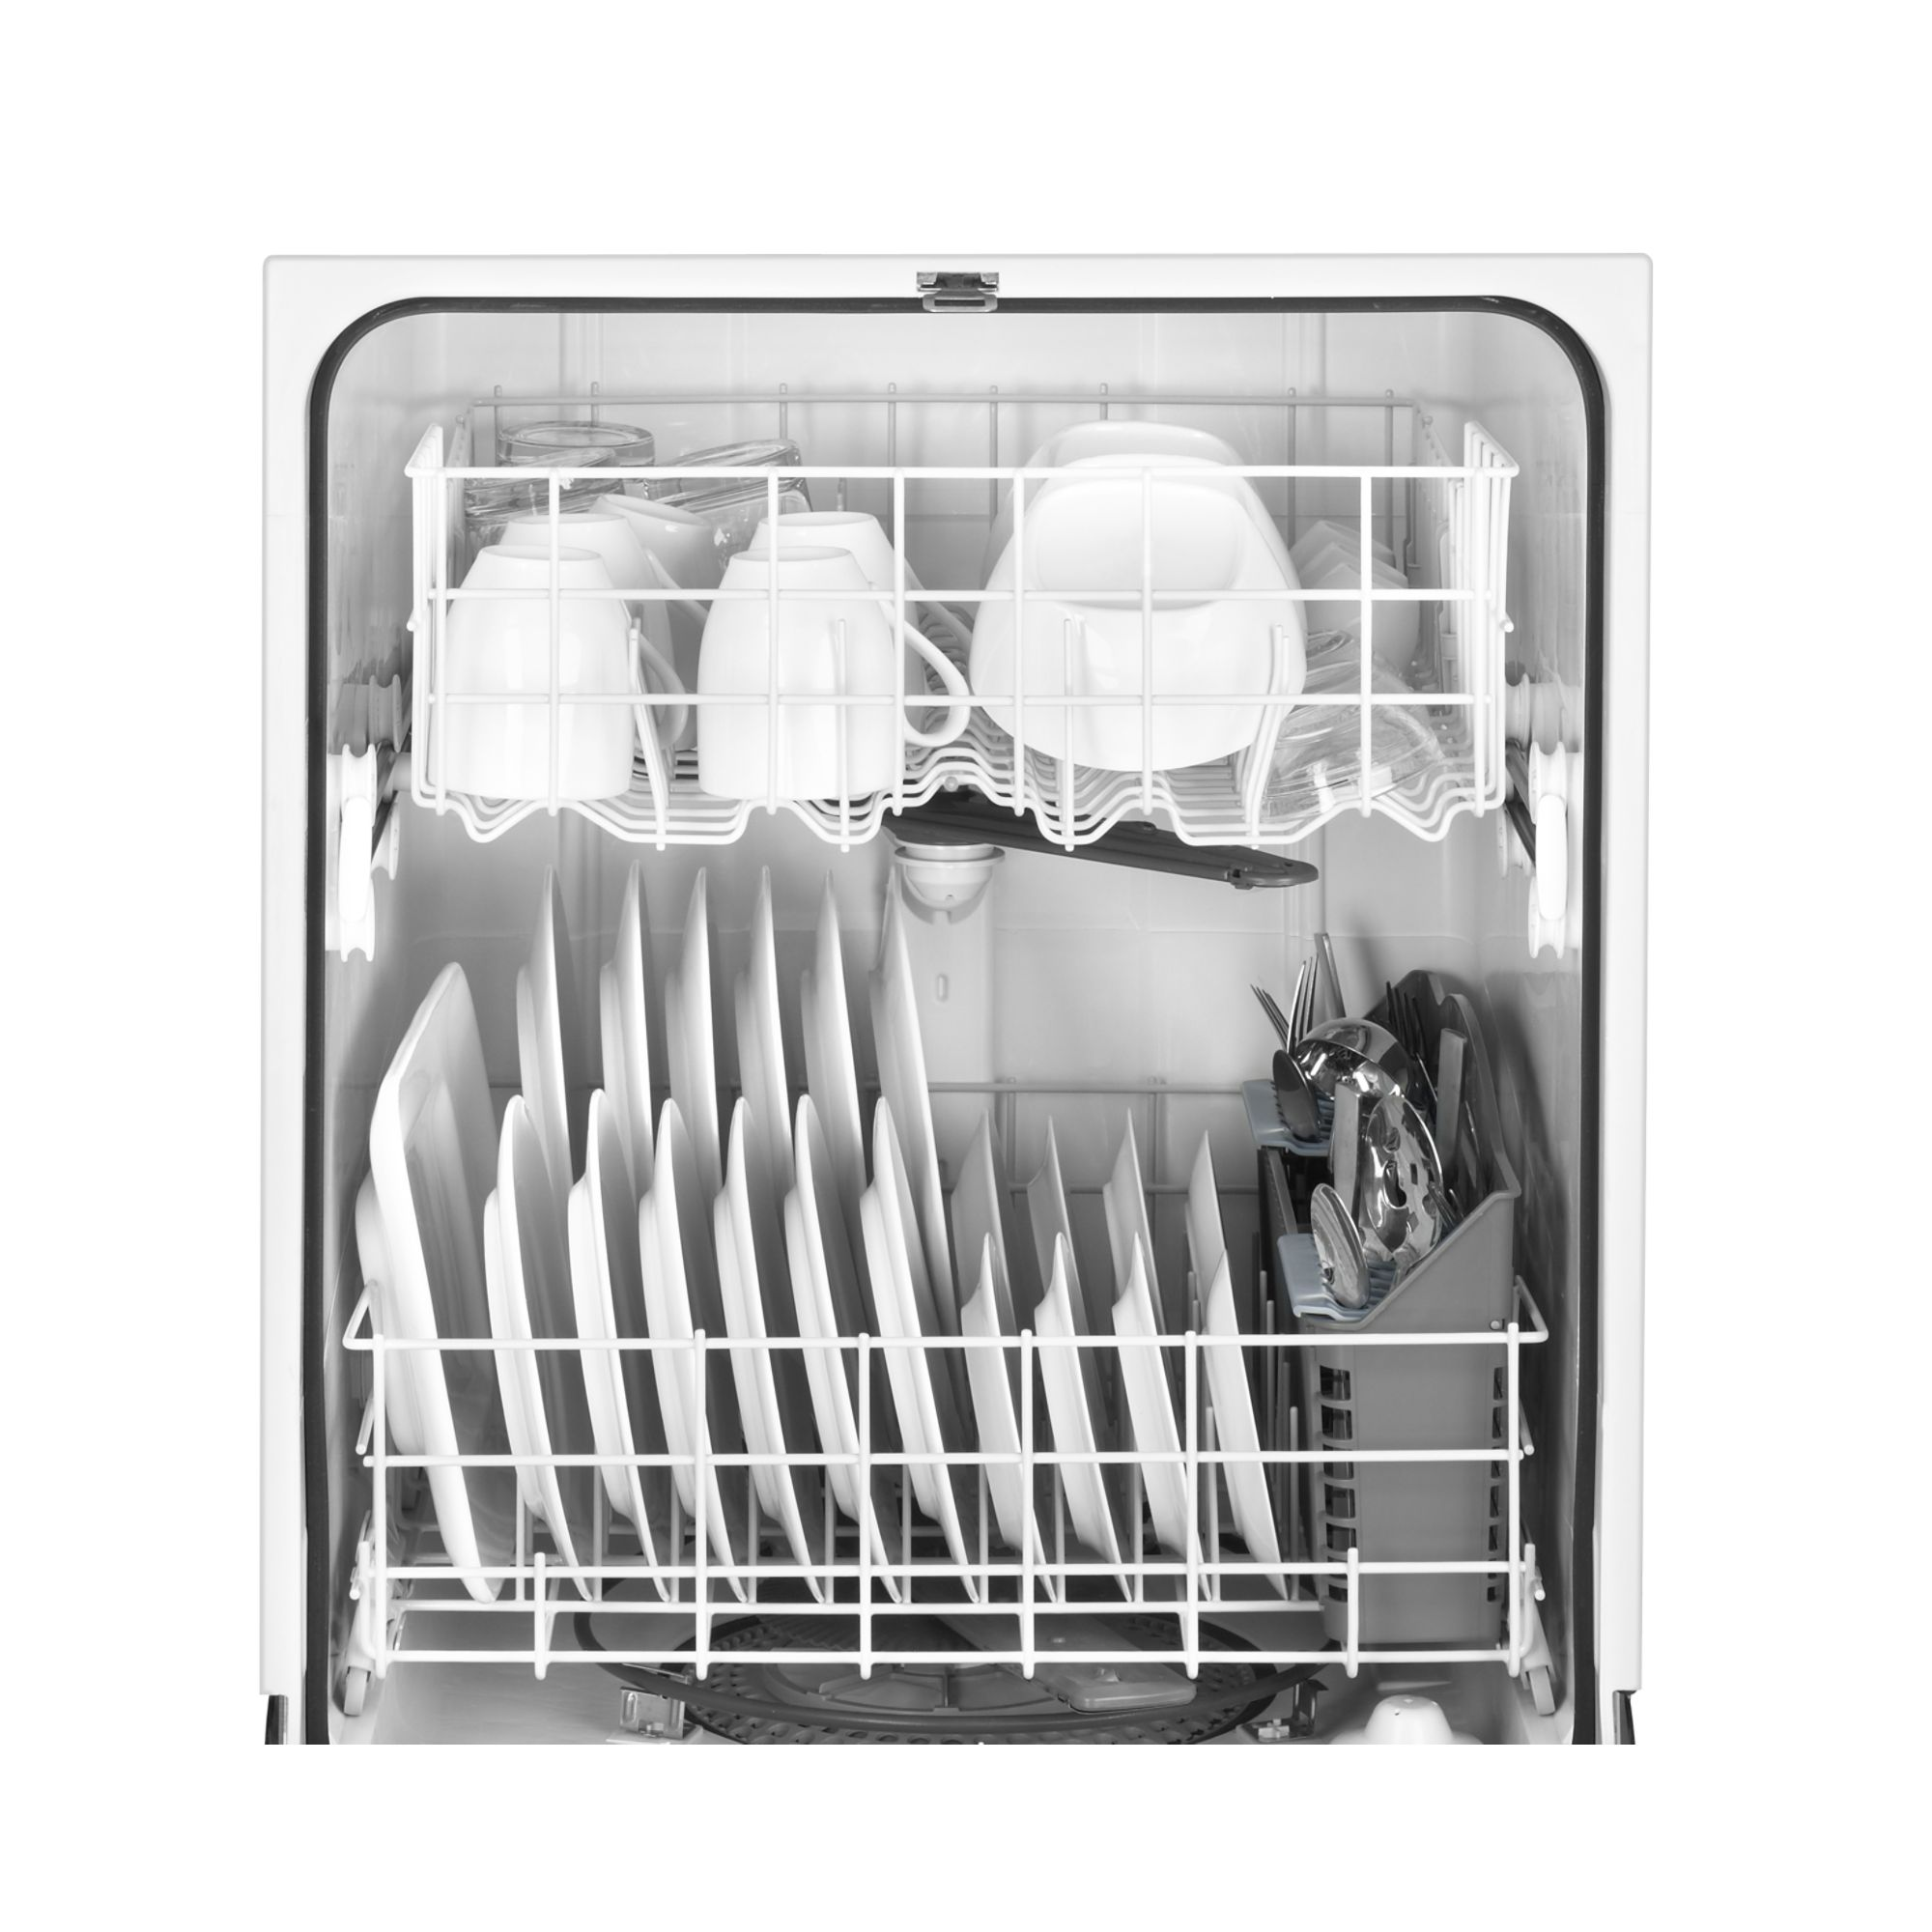 "Maytag 24"" Jetclean® Plus Dishwasher w/ High Temperature Wash Option - White"